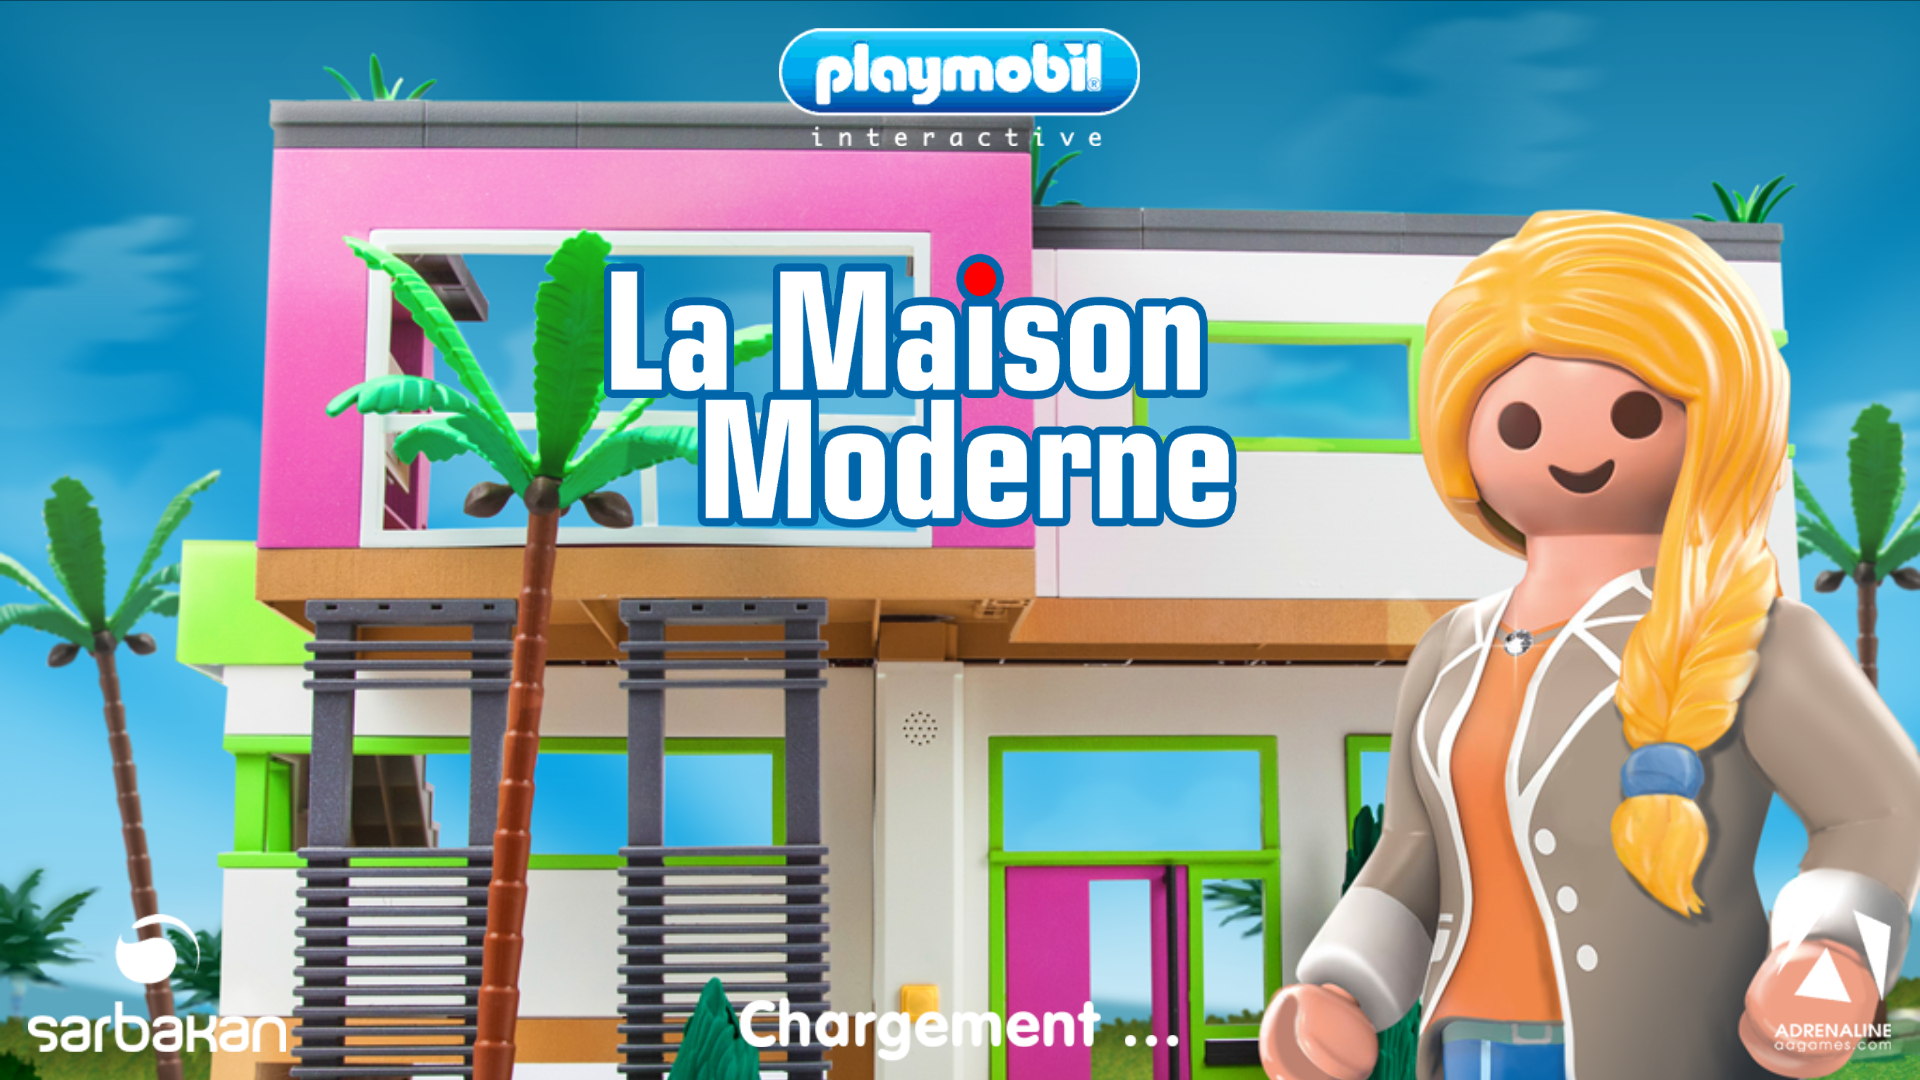 La Maison Moderne Playmobil Android 16/20 (Test, Photos) tout Jeux De Piece Gratuit